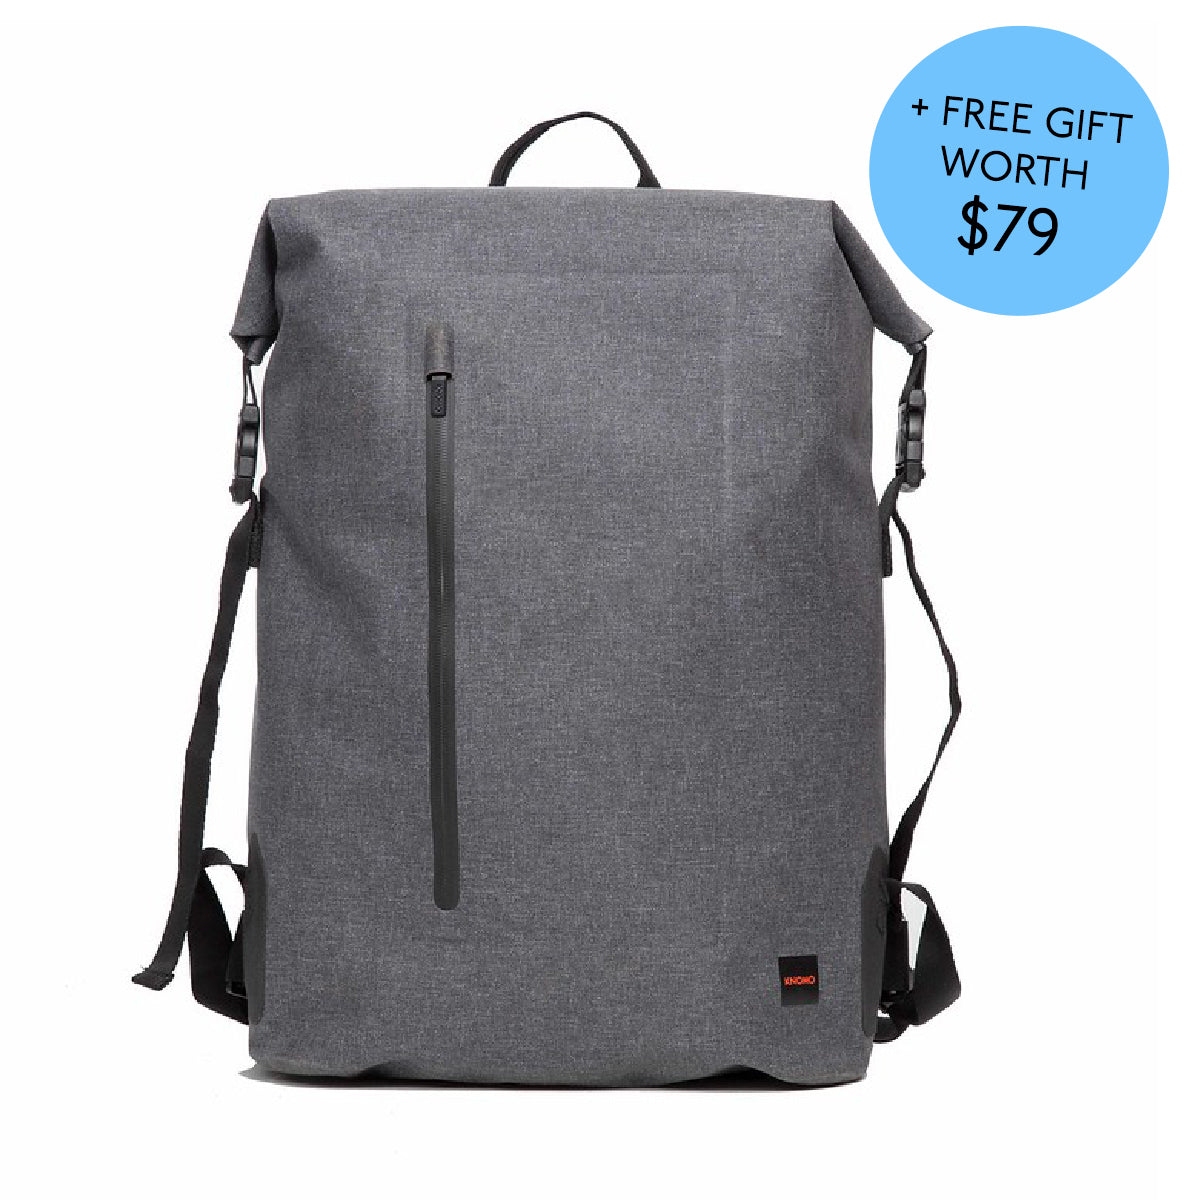 Cromwell with 10K mAh Battery Cromwell Backpack 15.6 - Grey with 10K mAh Battery -  Grey with 10K mAh Battery | KNOMO